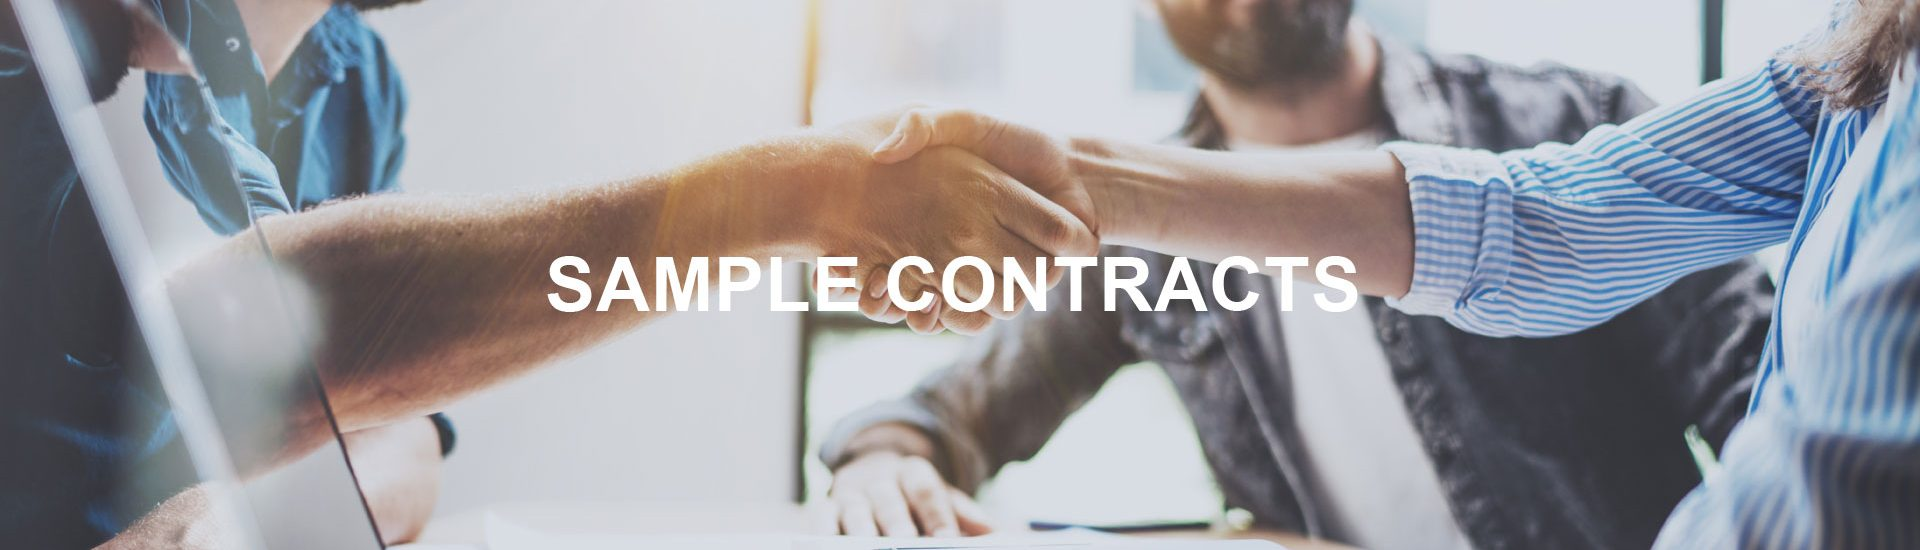 samplecontracts3